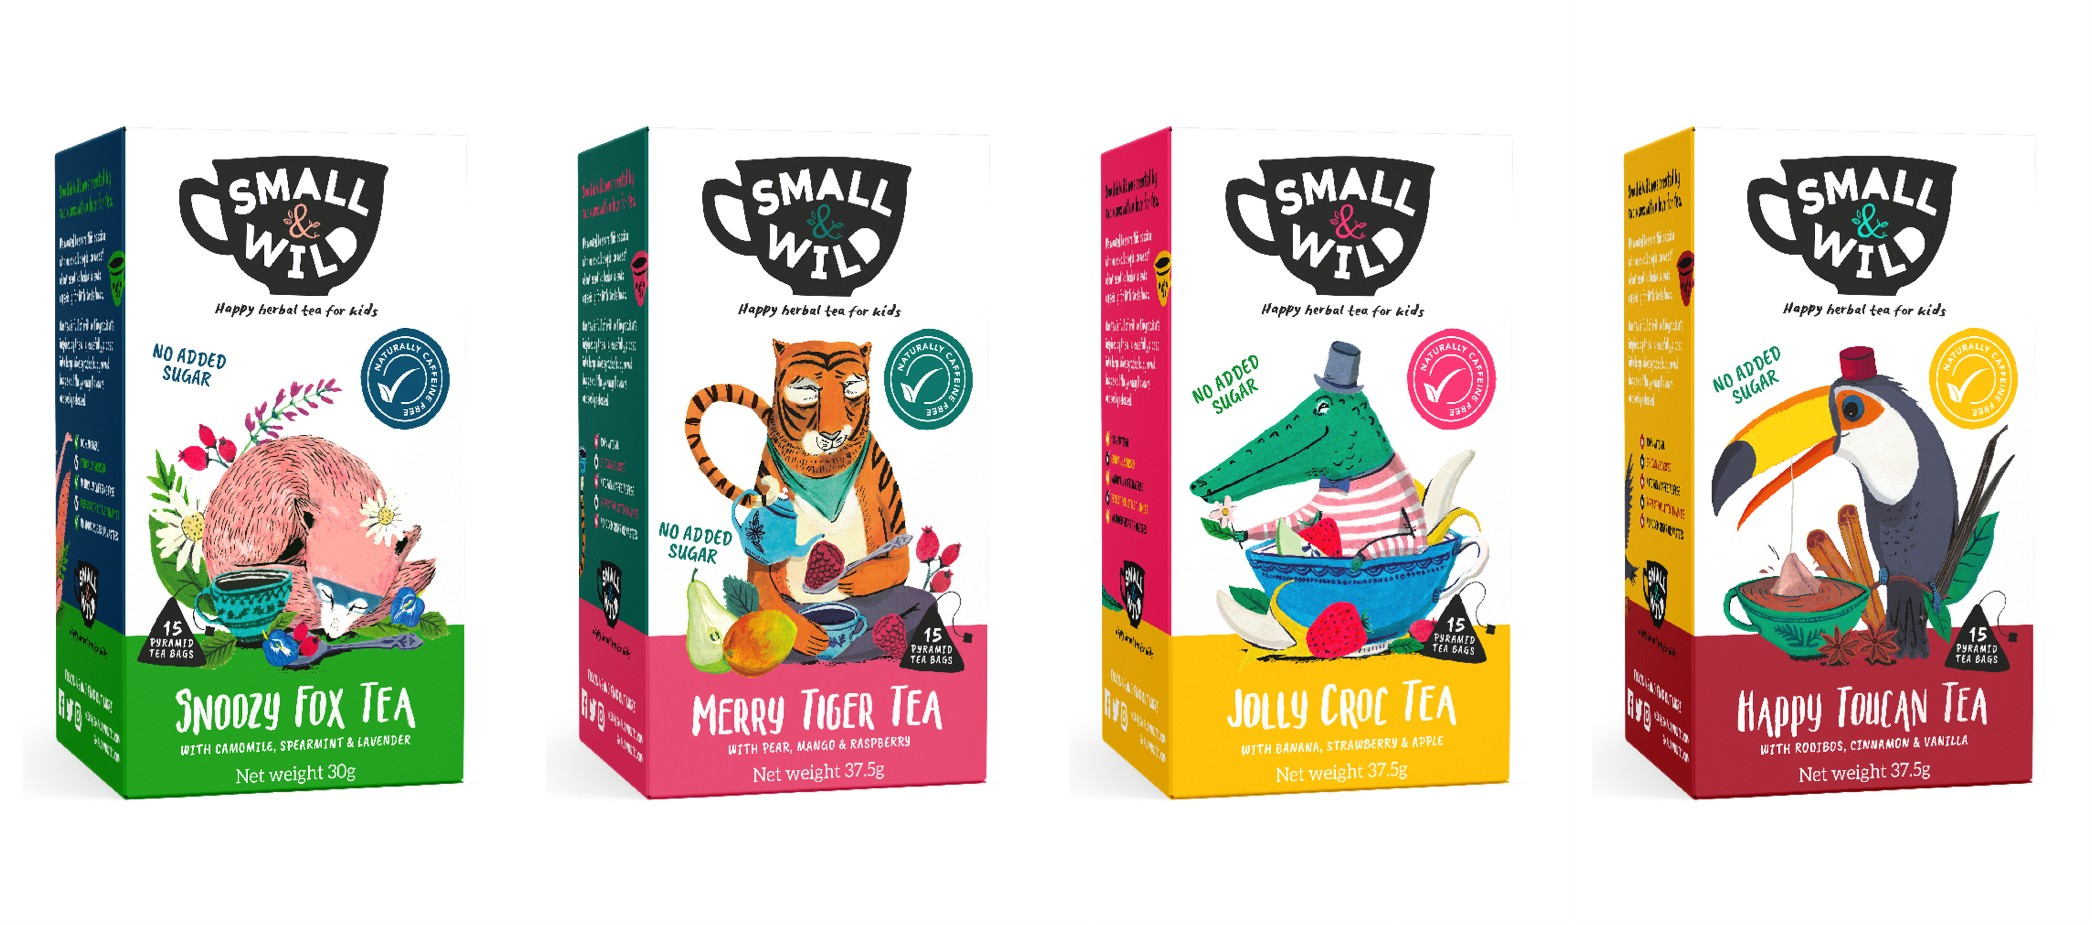 Role of Packaging - Attractive colors | Small & Wild